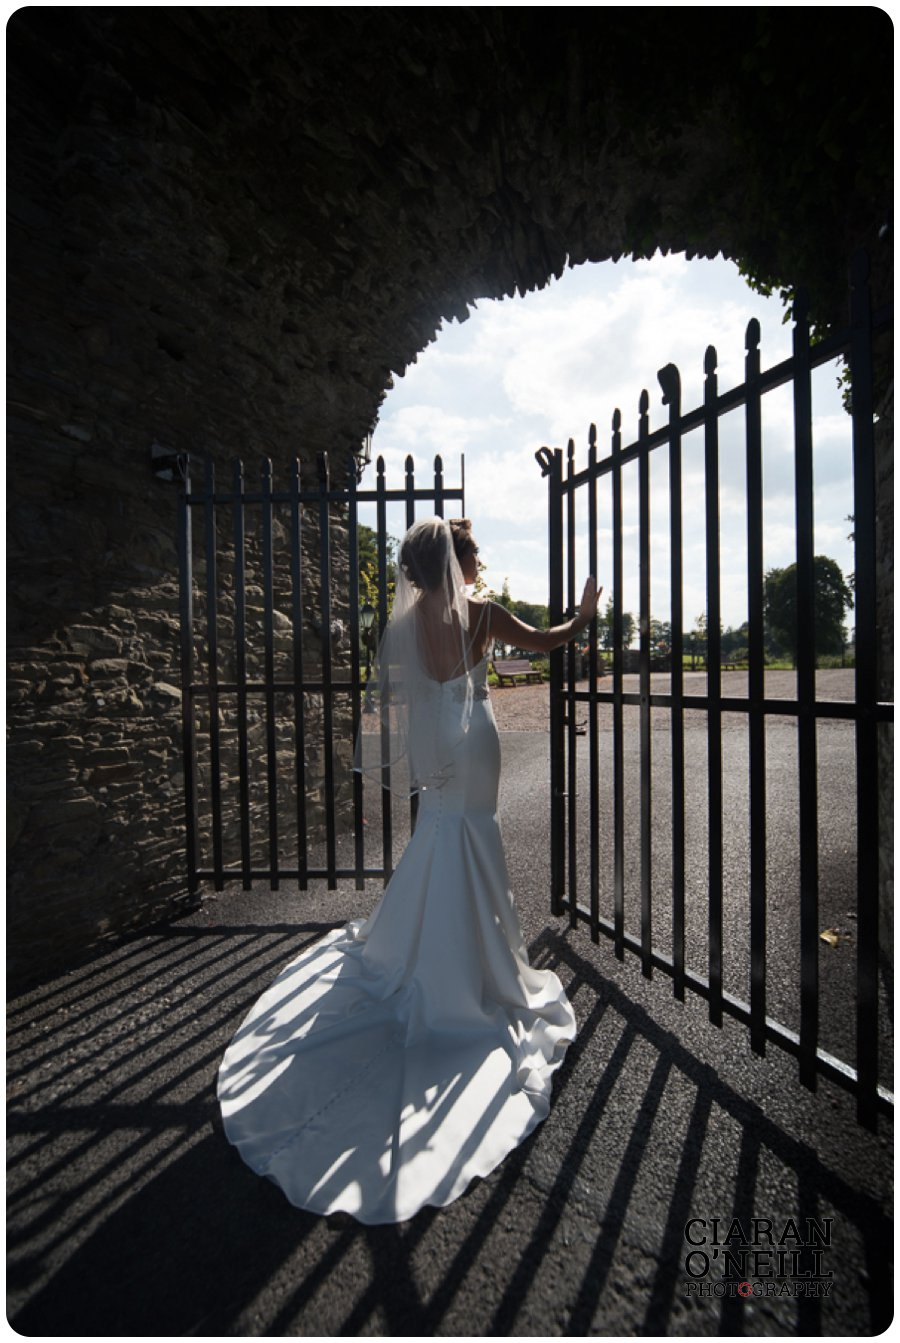 Jacqueline & Keith's wedding at Darver Castle by Ciaran O'Neill Photography 19